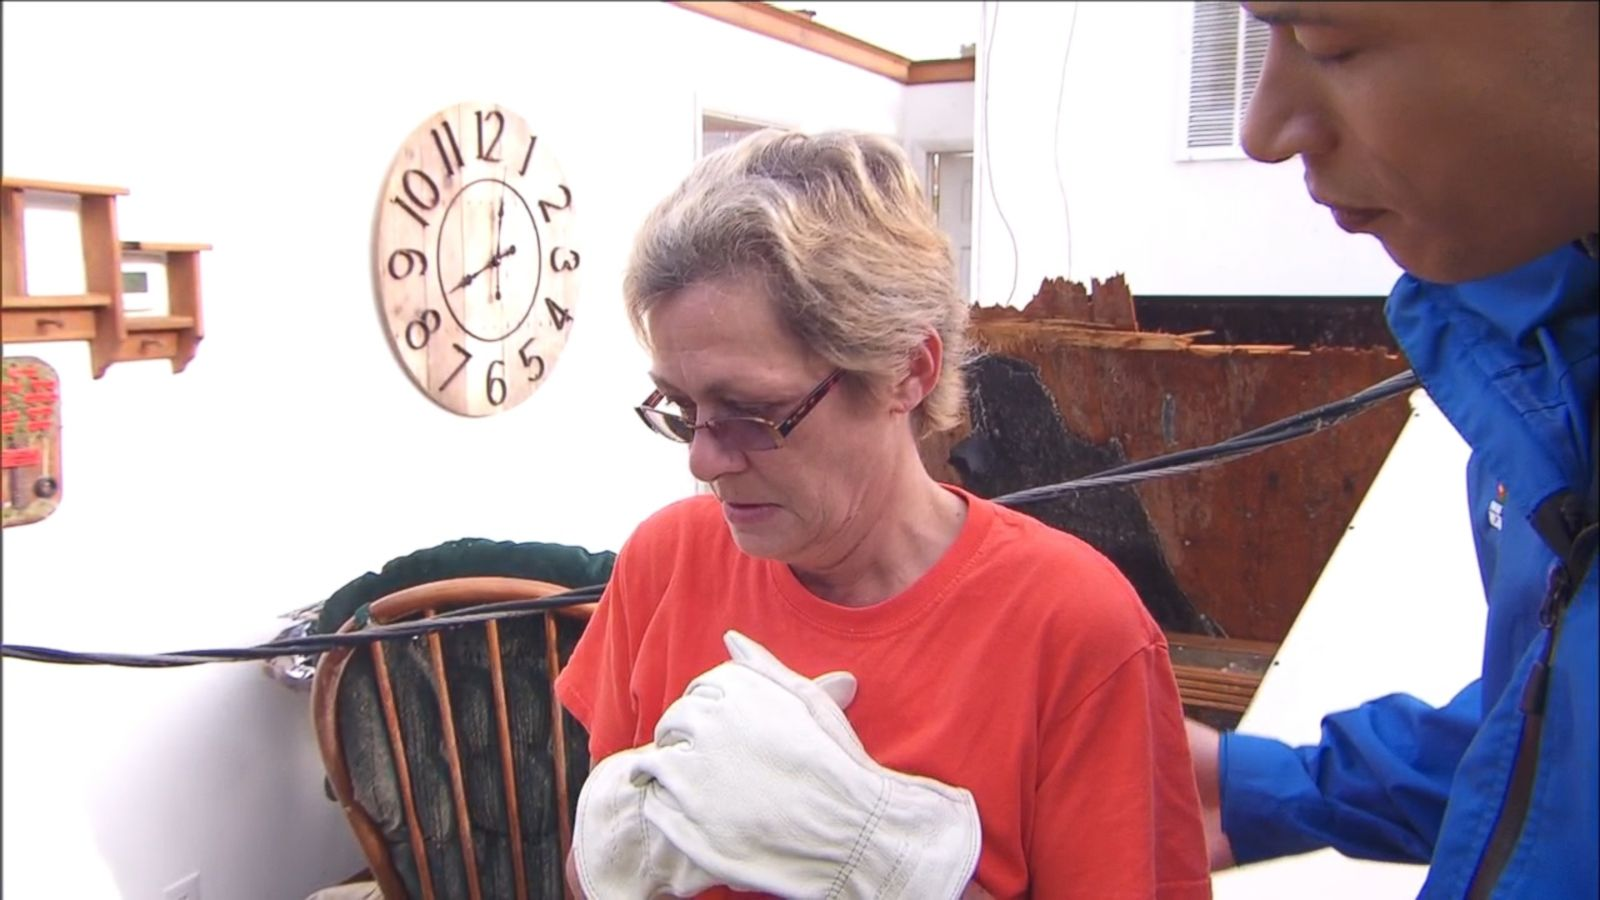 Becki Sweeney of Kokomo, Indiana, is trying to recover personal items after a tornado tore through her community and destroyed her home of 16 years.